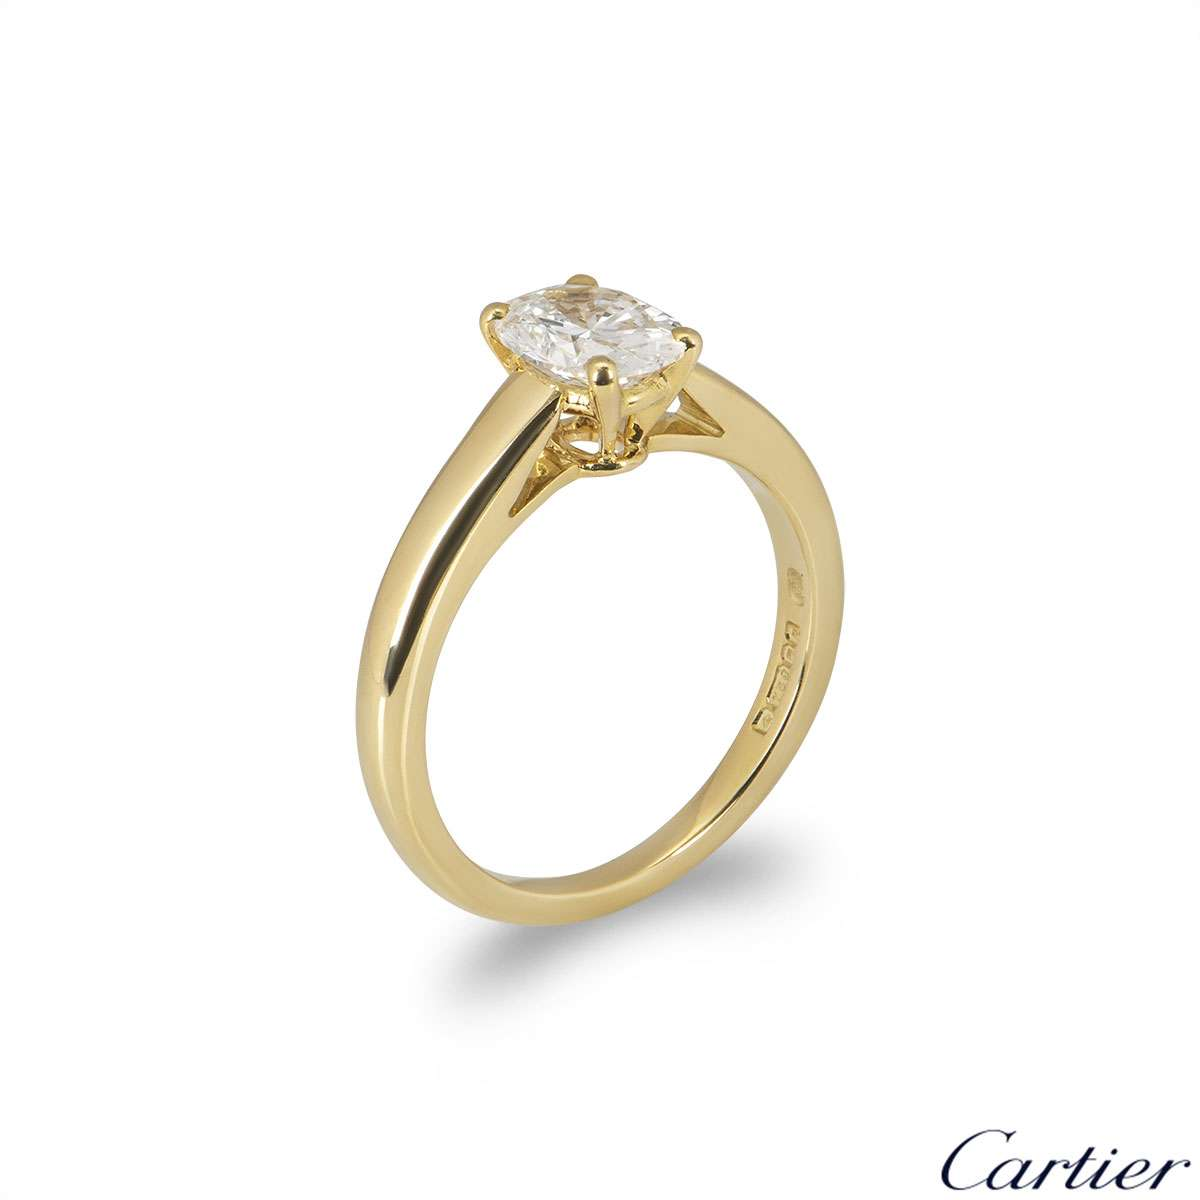 Cartier Yellow Gold Oval Cut Diamond Ring 0.75ct